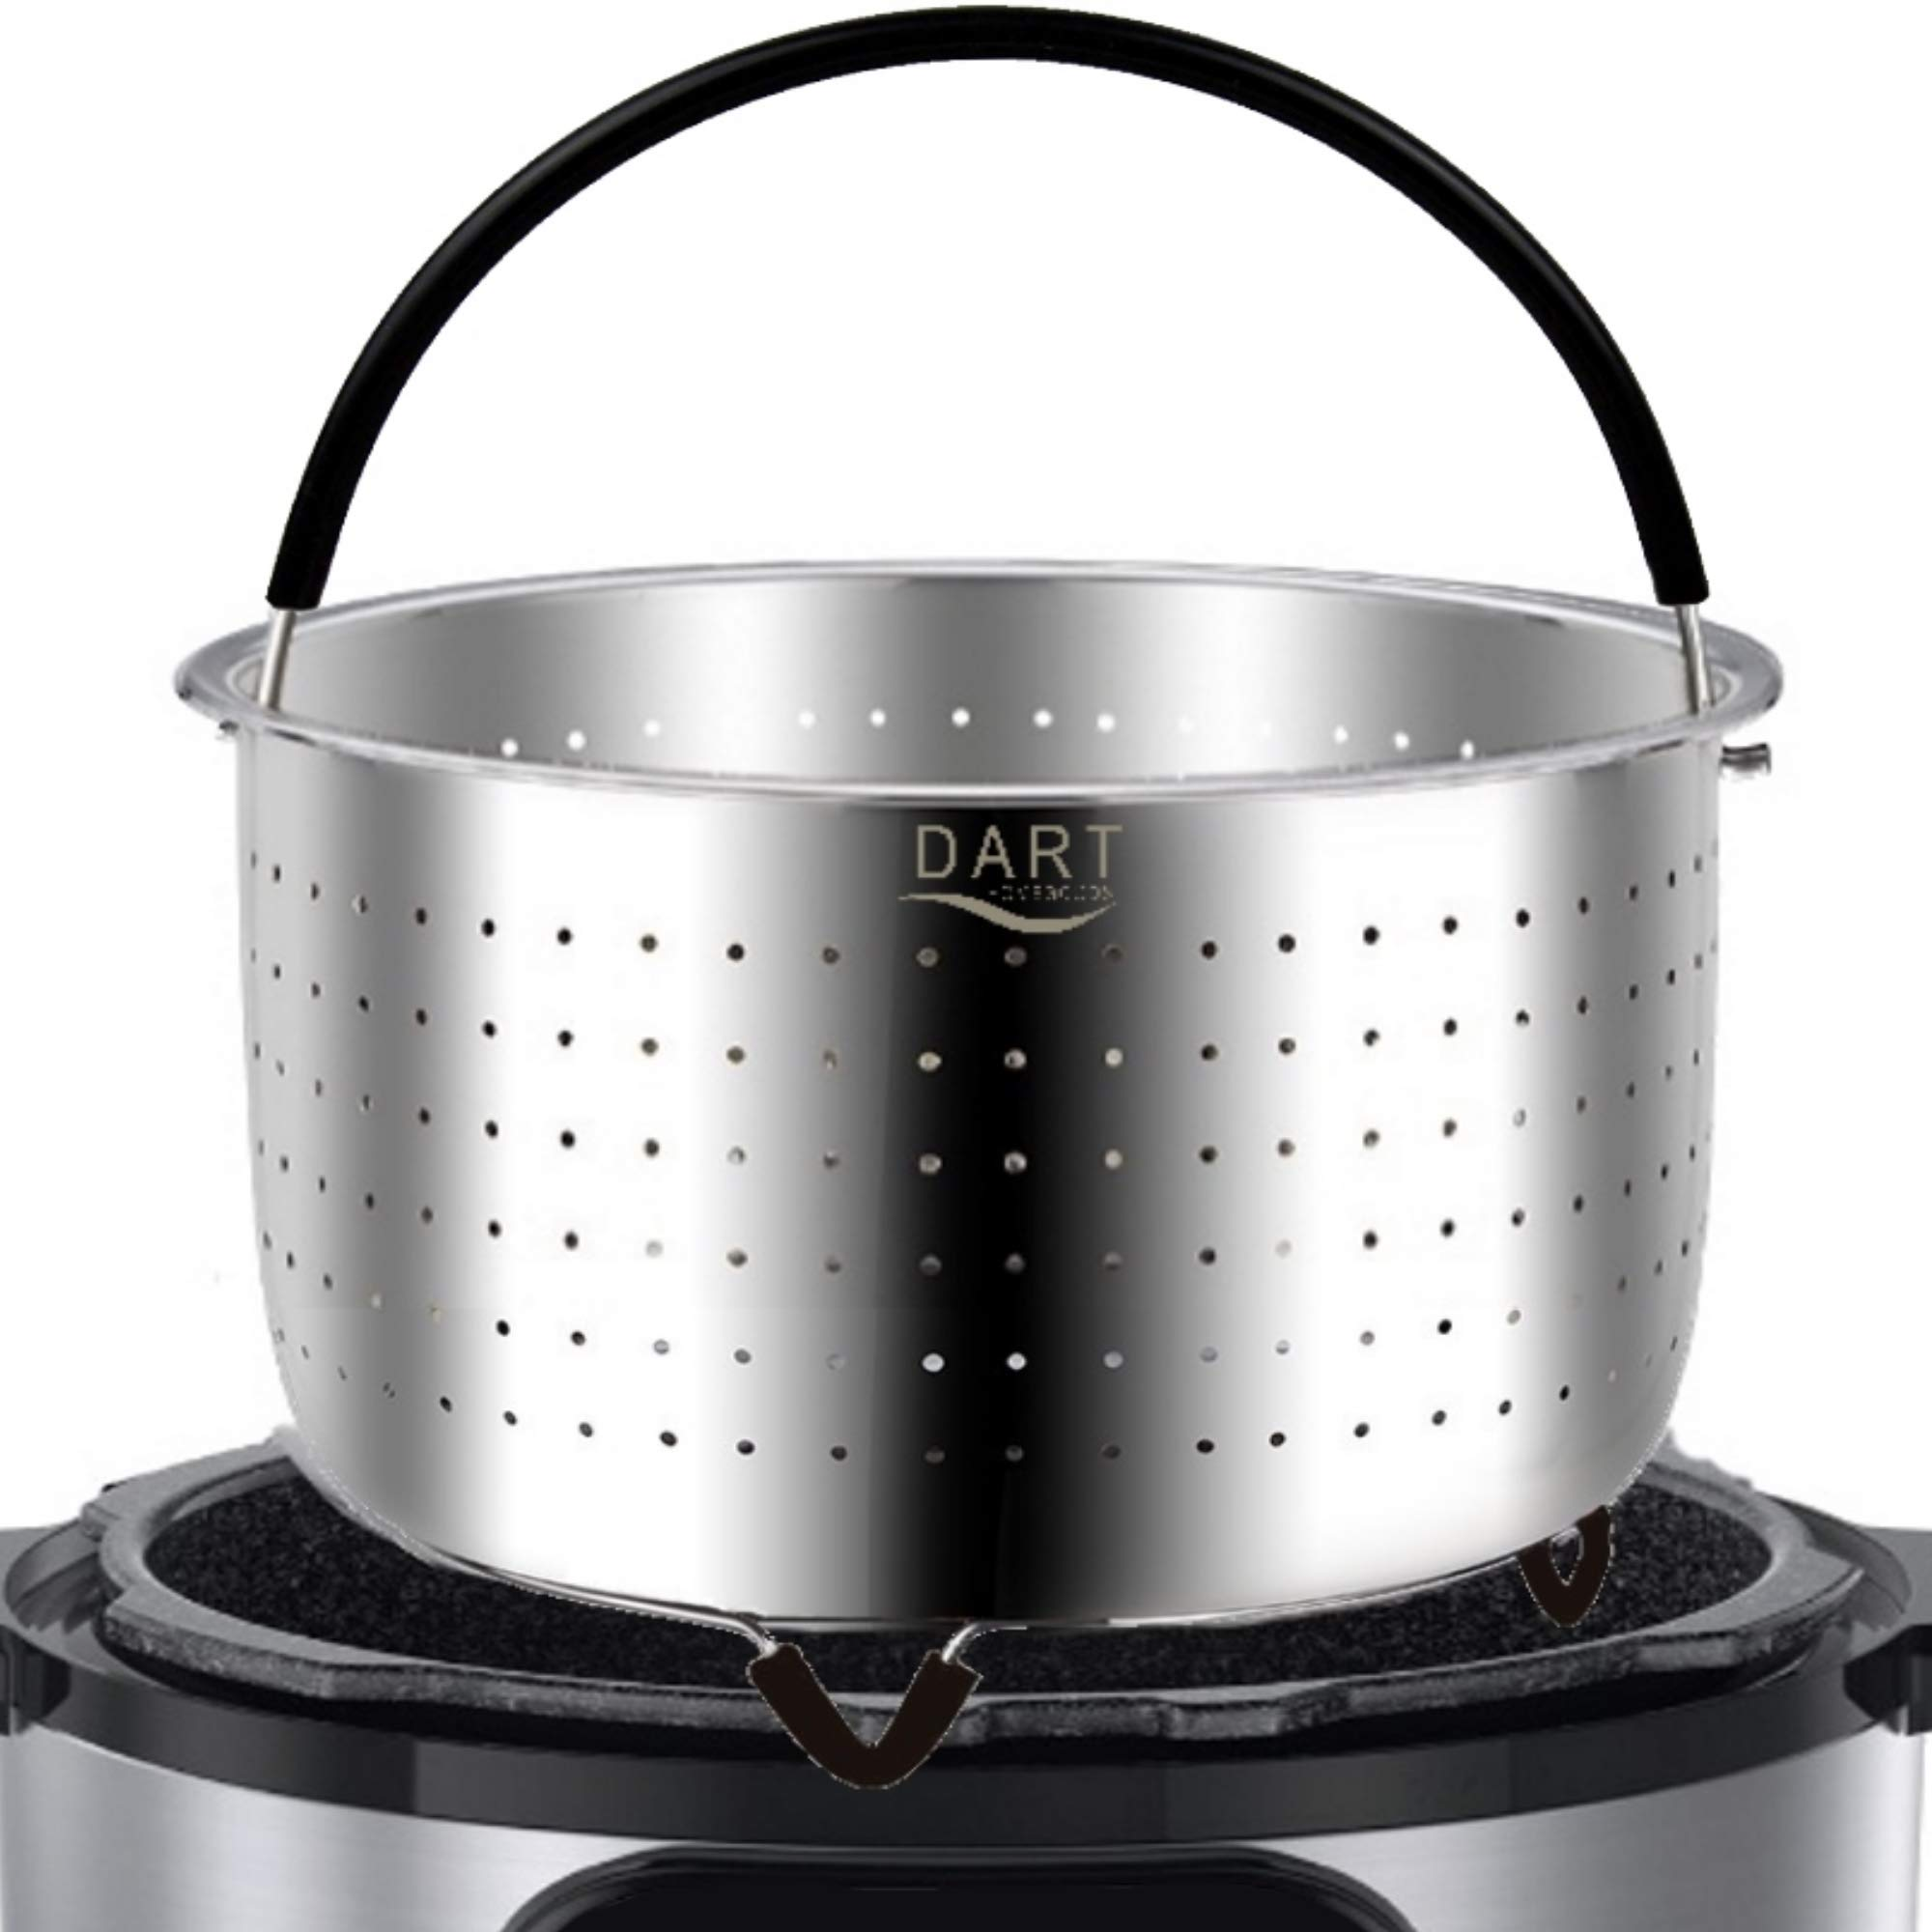 The Original - Steamer Basket Insert, Stainless Steel - for 6 qt and 8 Quart Instant Pot, Pressure Cooker - Strainer for Pasta, Rice Tamales, Fish, Veggies, Eggs by DART Homegoods